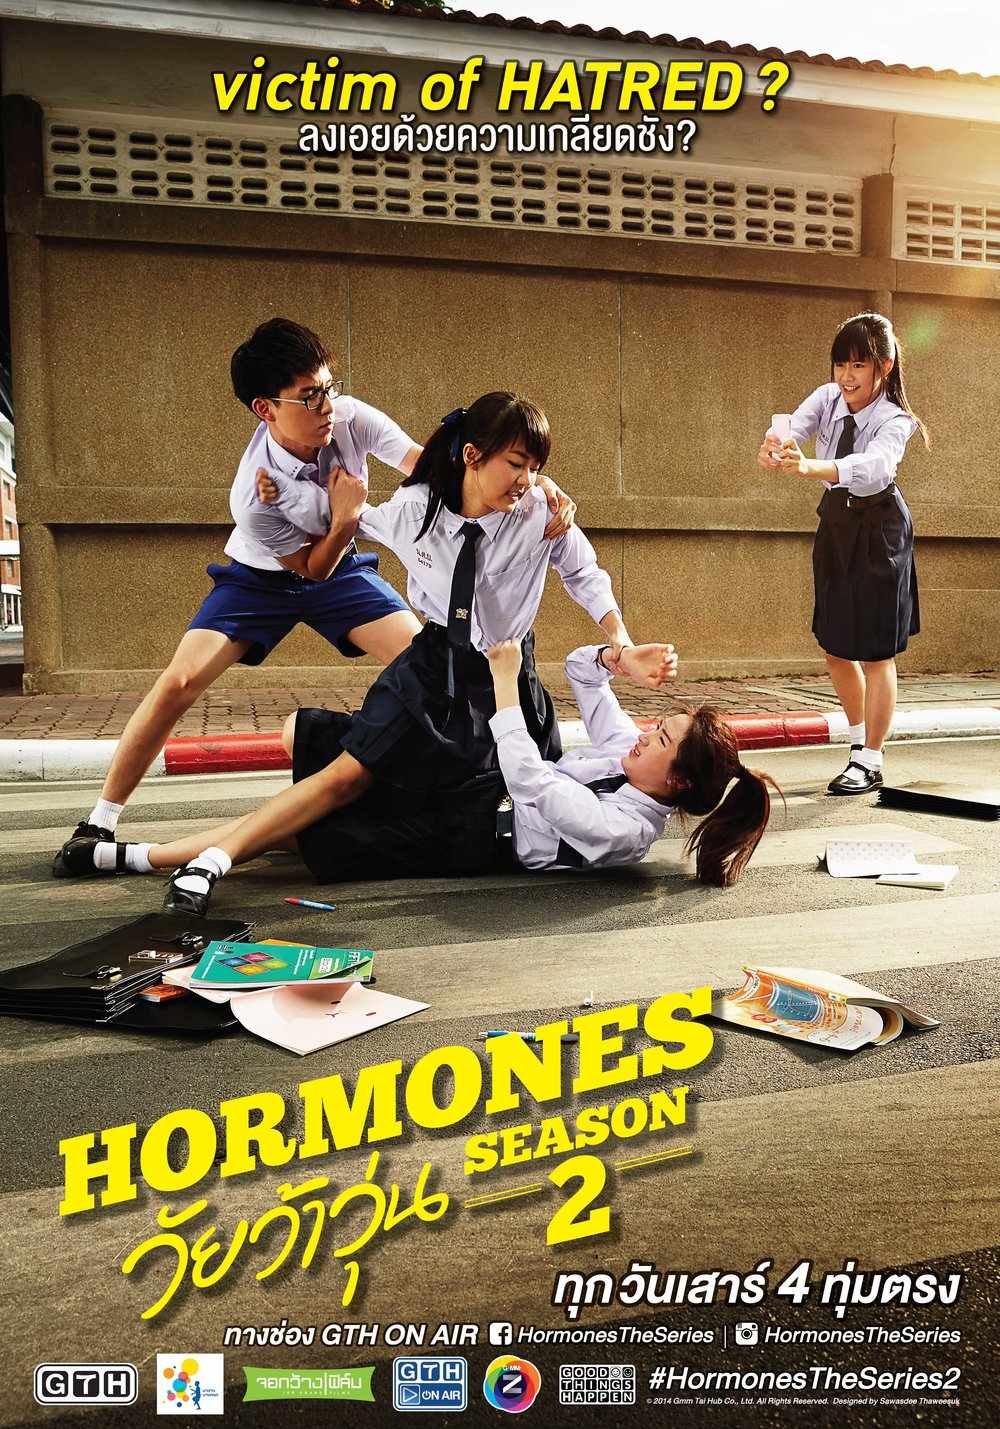 AW POSTER HORMONES 2 FIGHTING 1MB-01.jpg